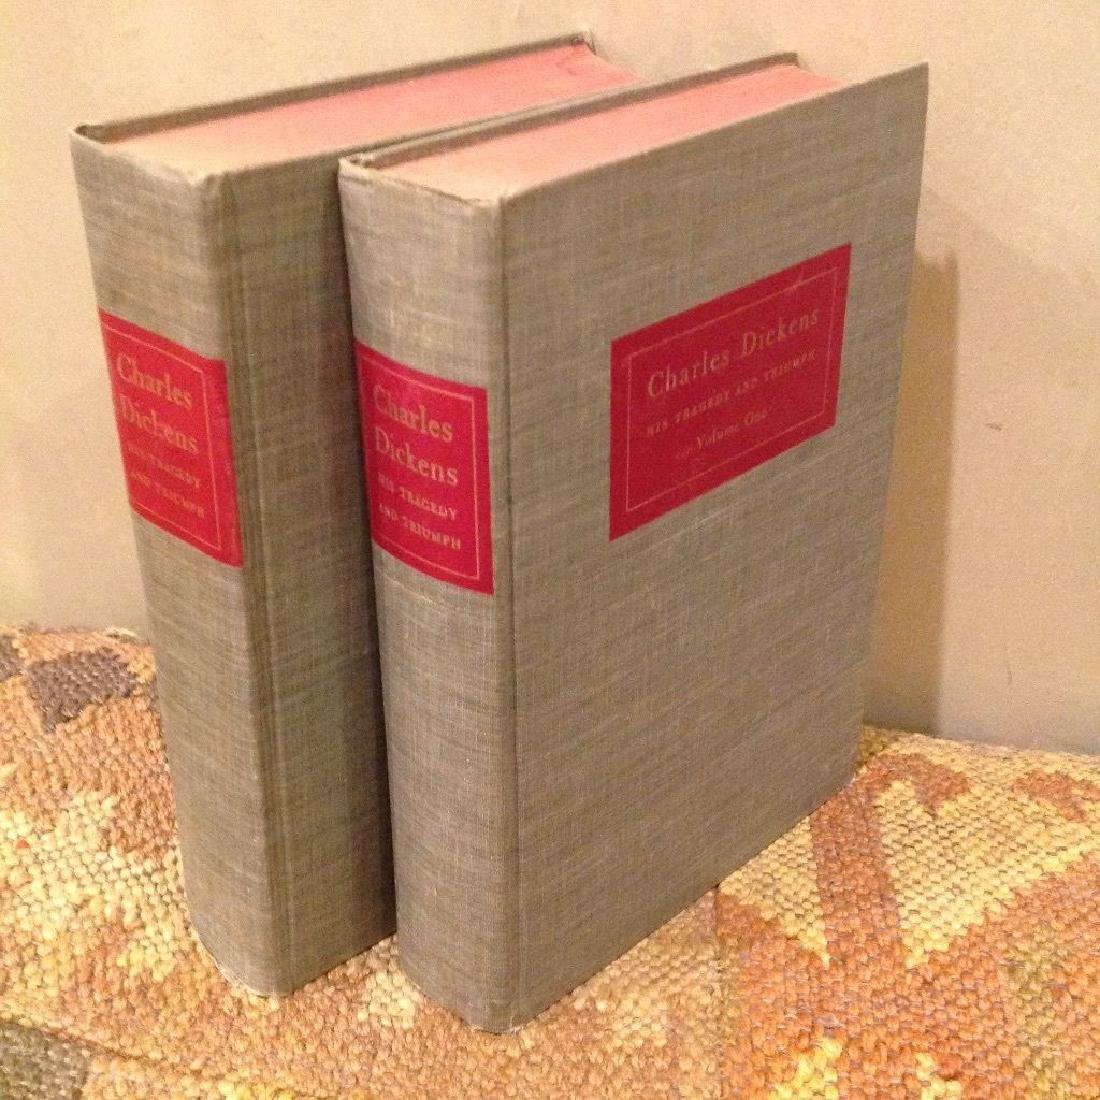 Charles Dickens: His Tragedy & Triumph, 2 Vol 1st Ed